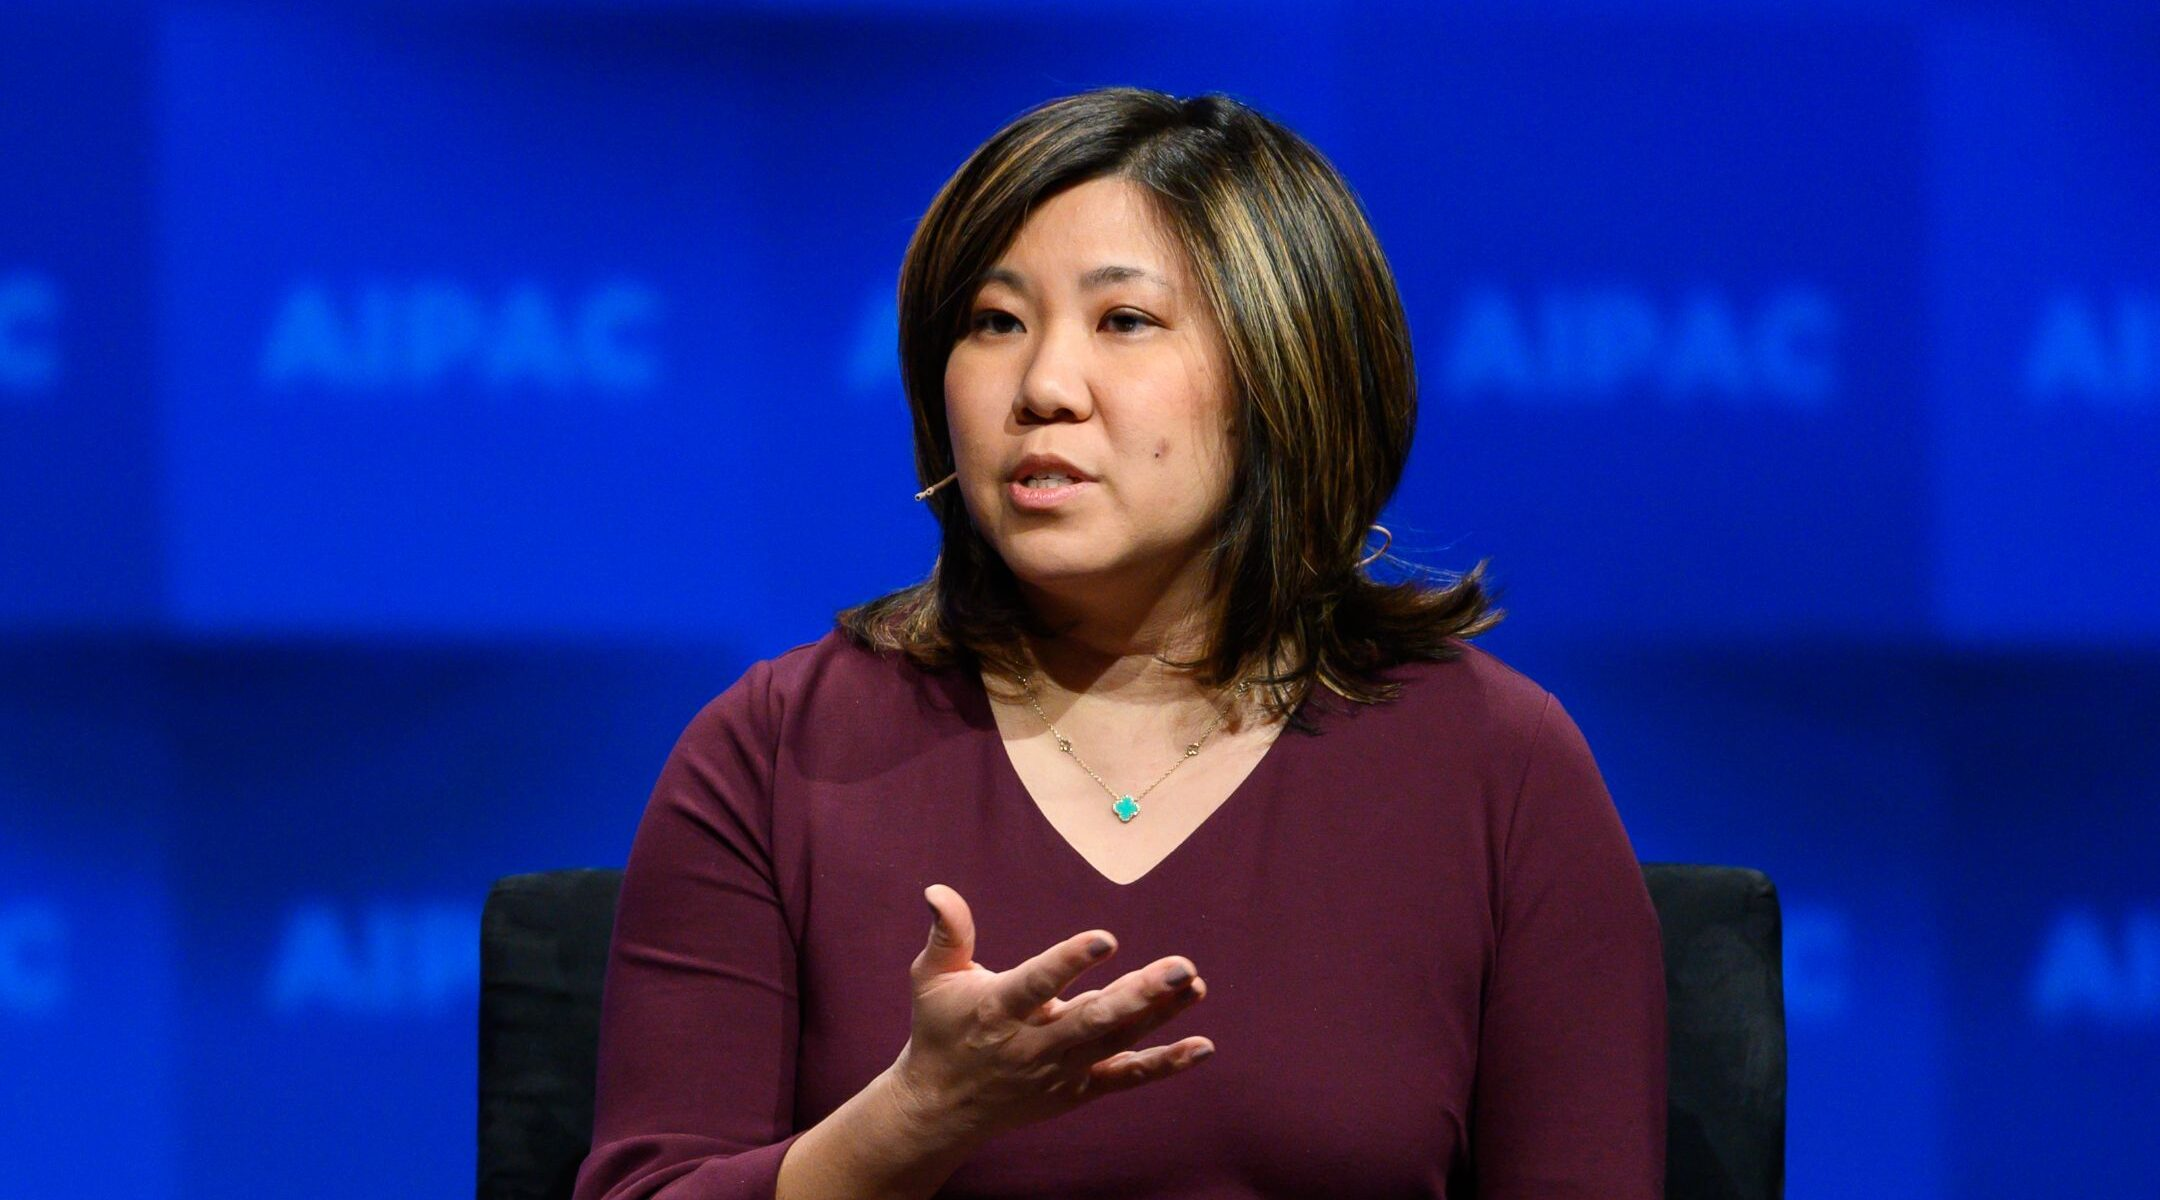 Rep. Grace Meng (D-Queens) speaks at the AIPAC policy conference in Washington, March 25, 2019. (Michael Brochstein/SOPA Images/LightRocket via Getty Images)